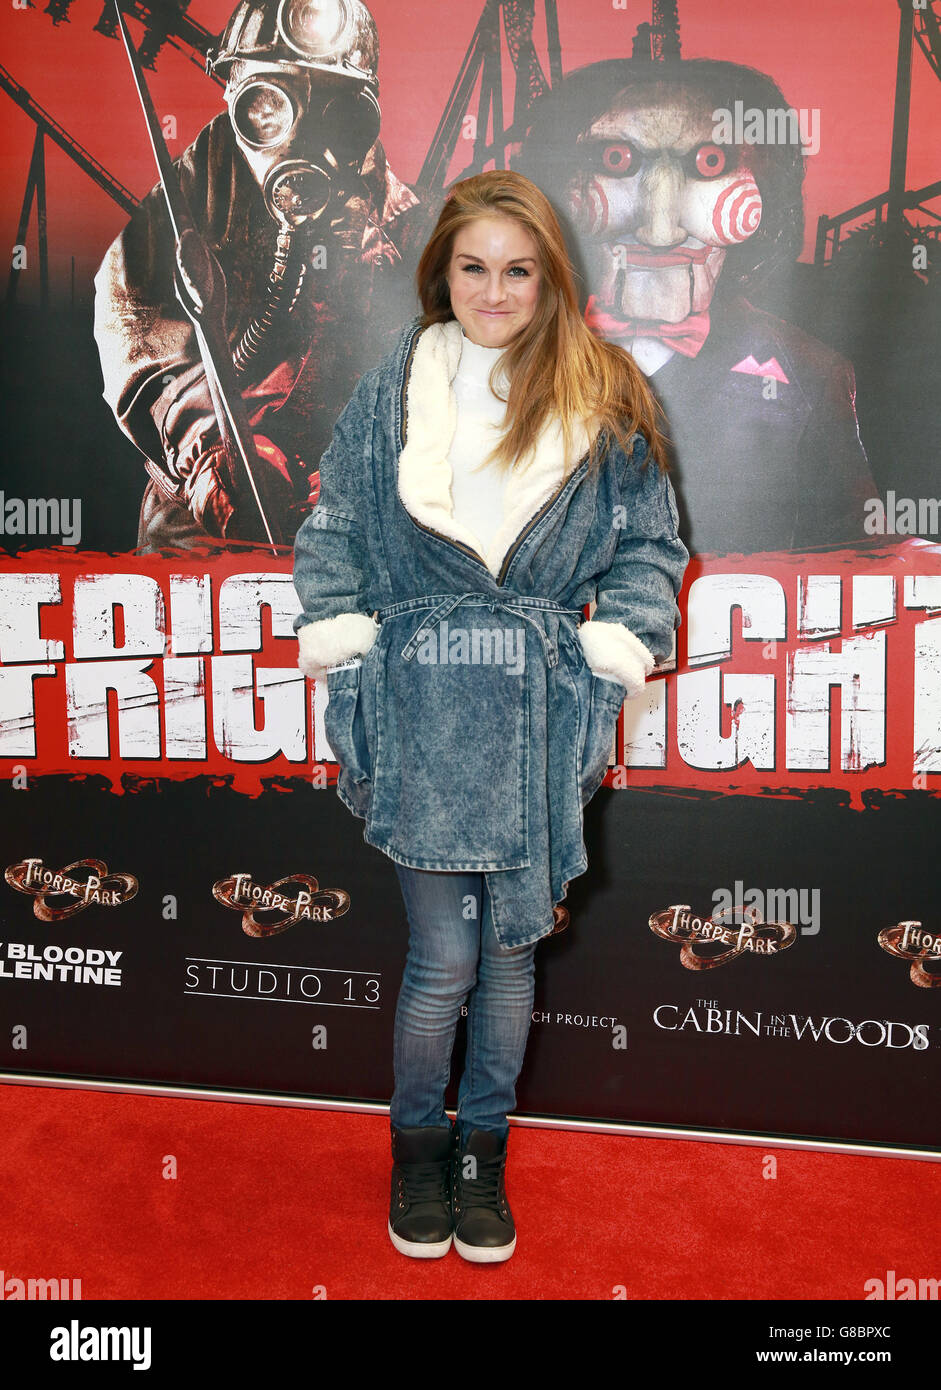 Thorpe Park Fright Nights launch - Stock Image